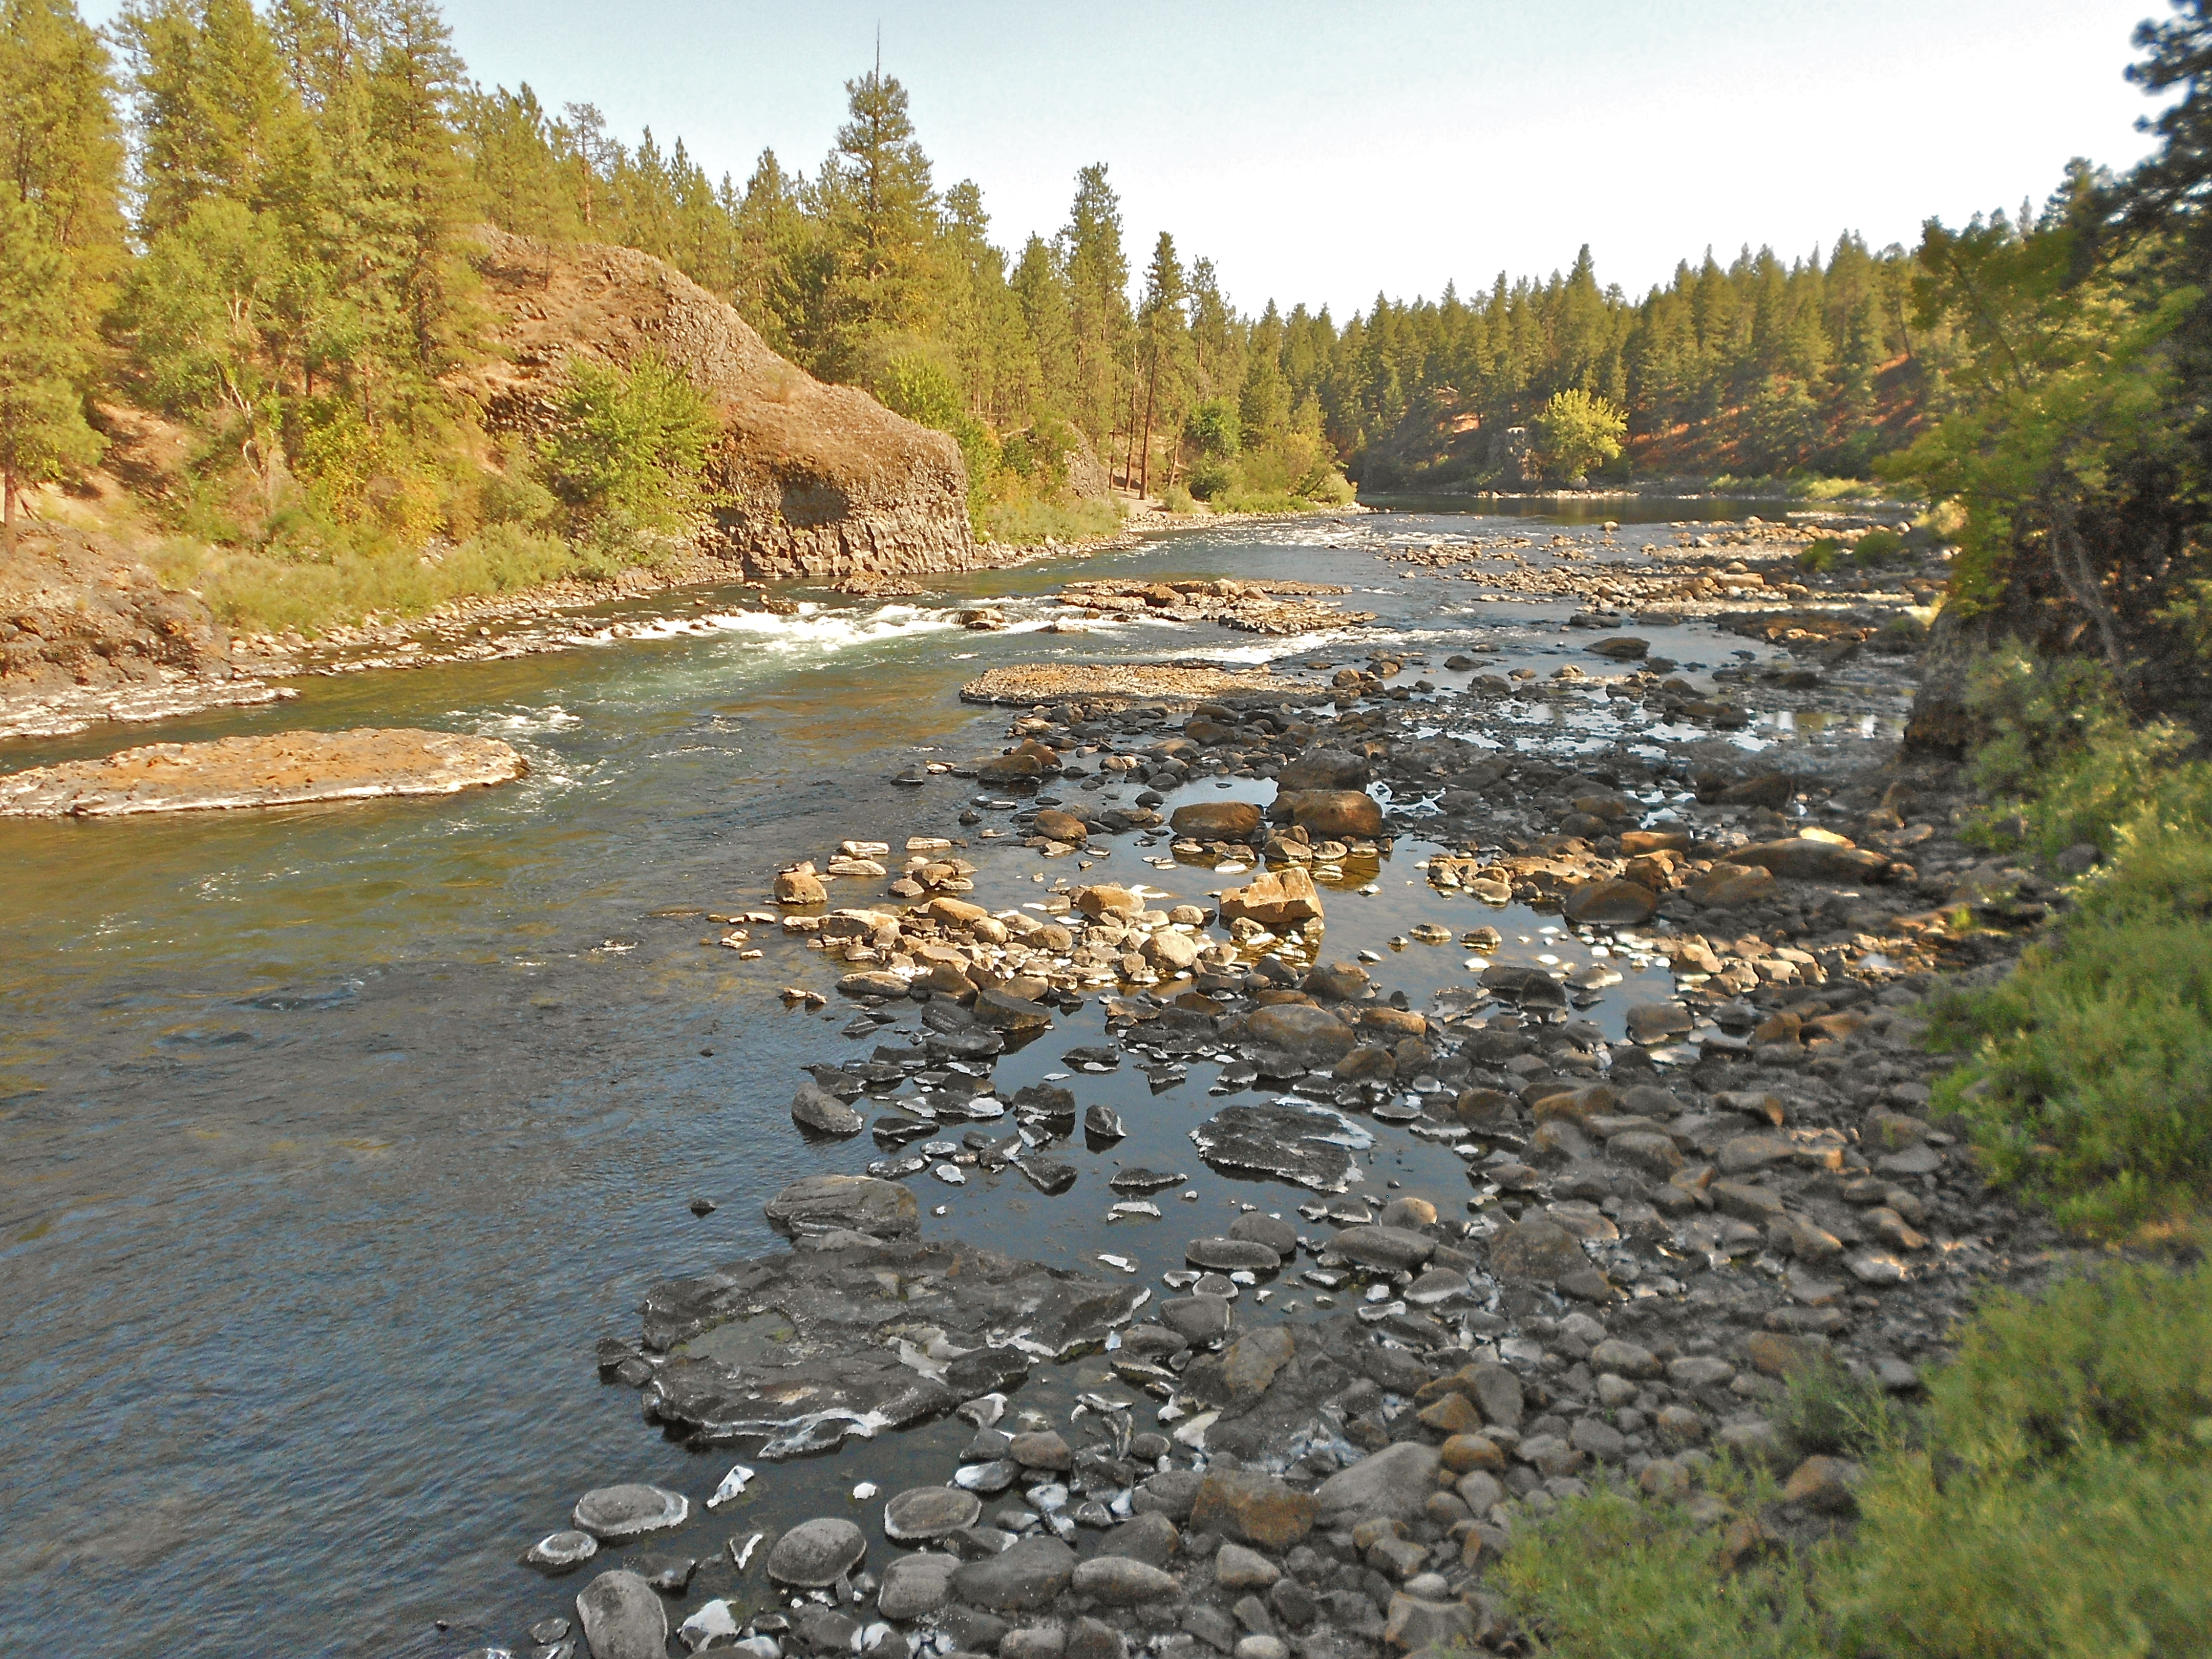 Spokane River at 630 cfs - Photo by John Osborn taken at Riverside State Park